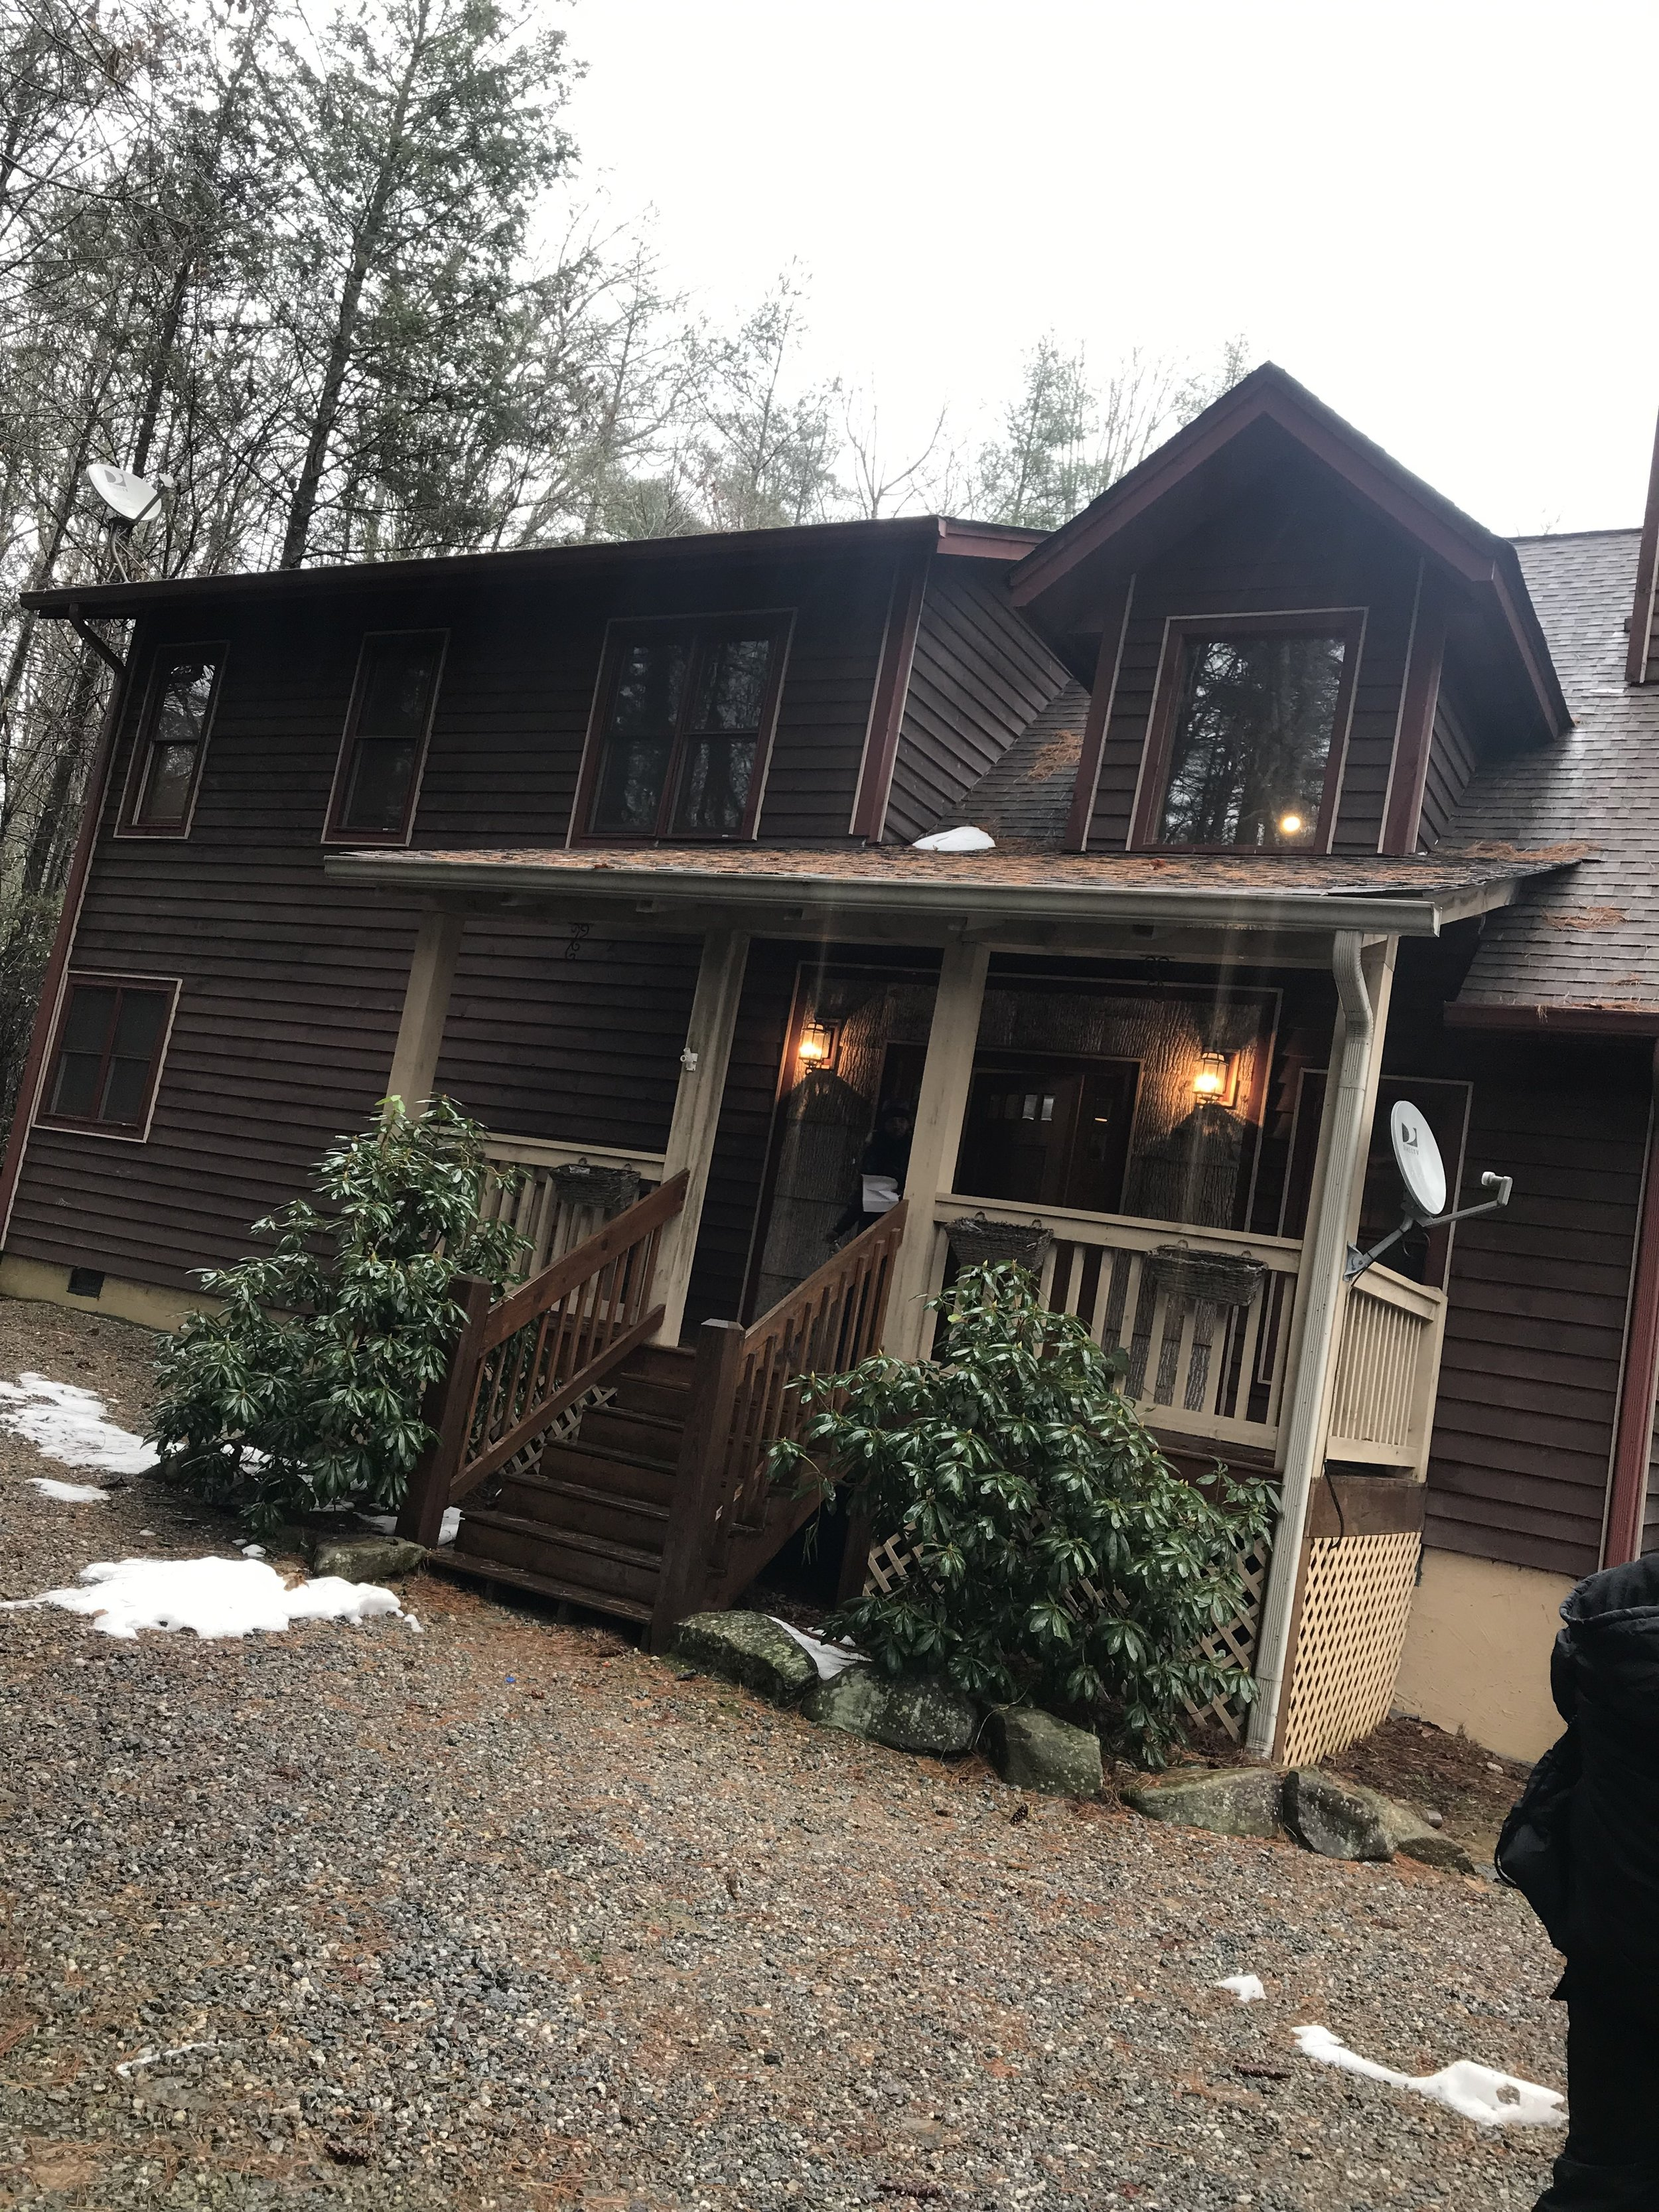 This was our home for the weekend